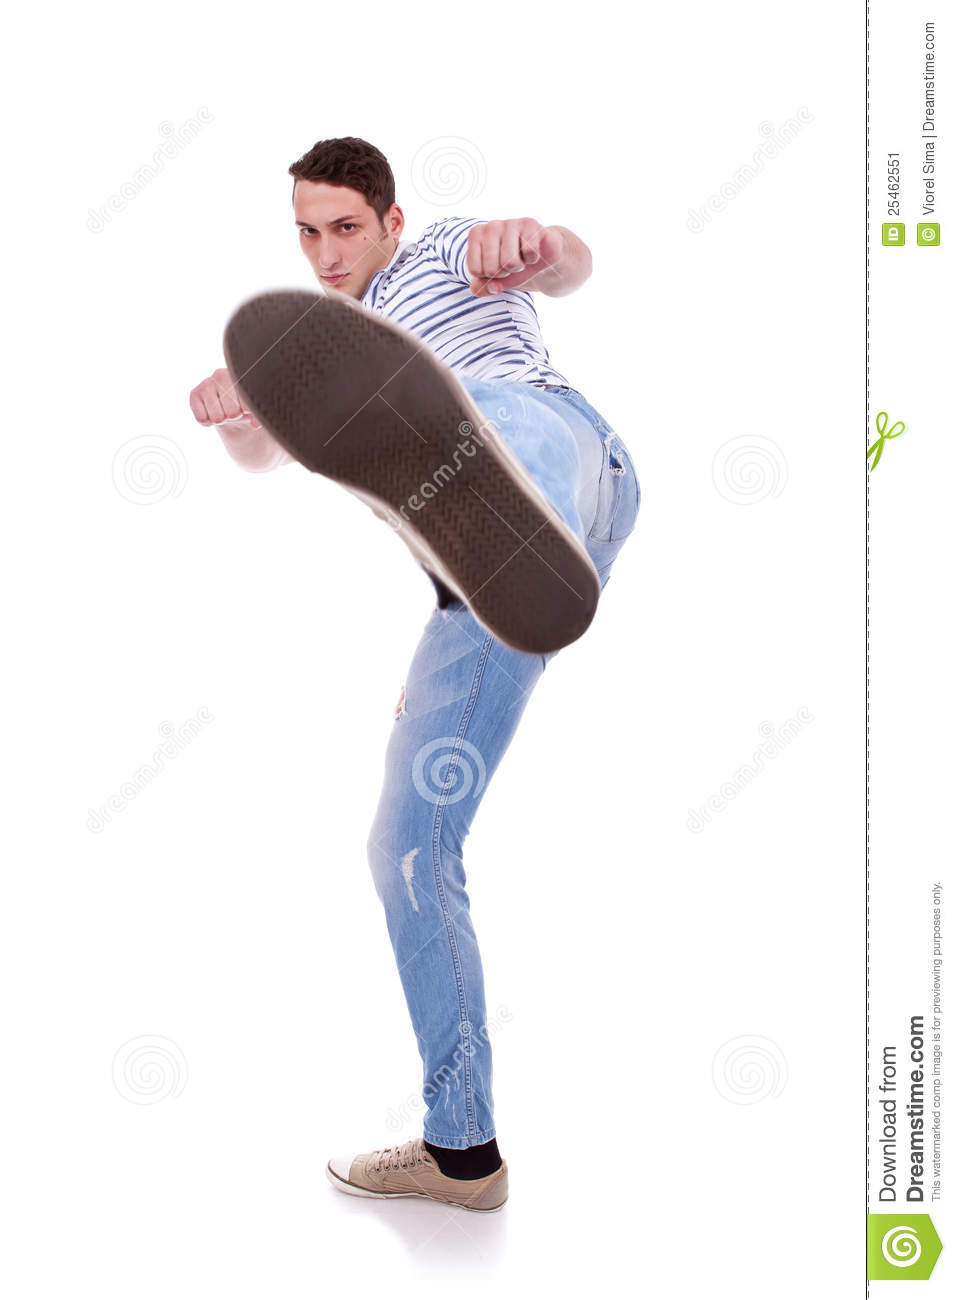 Young Casual Man Kicking Stock Image - Image: 25462551